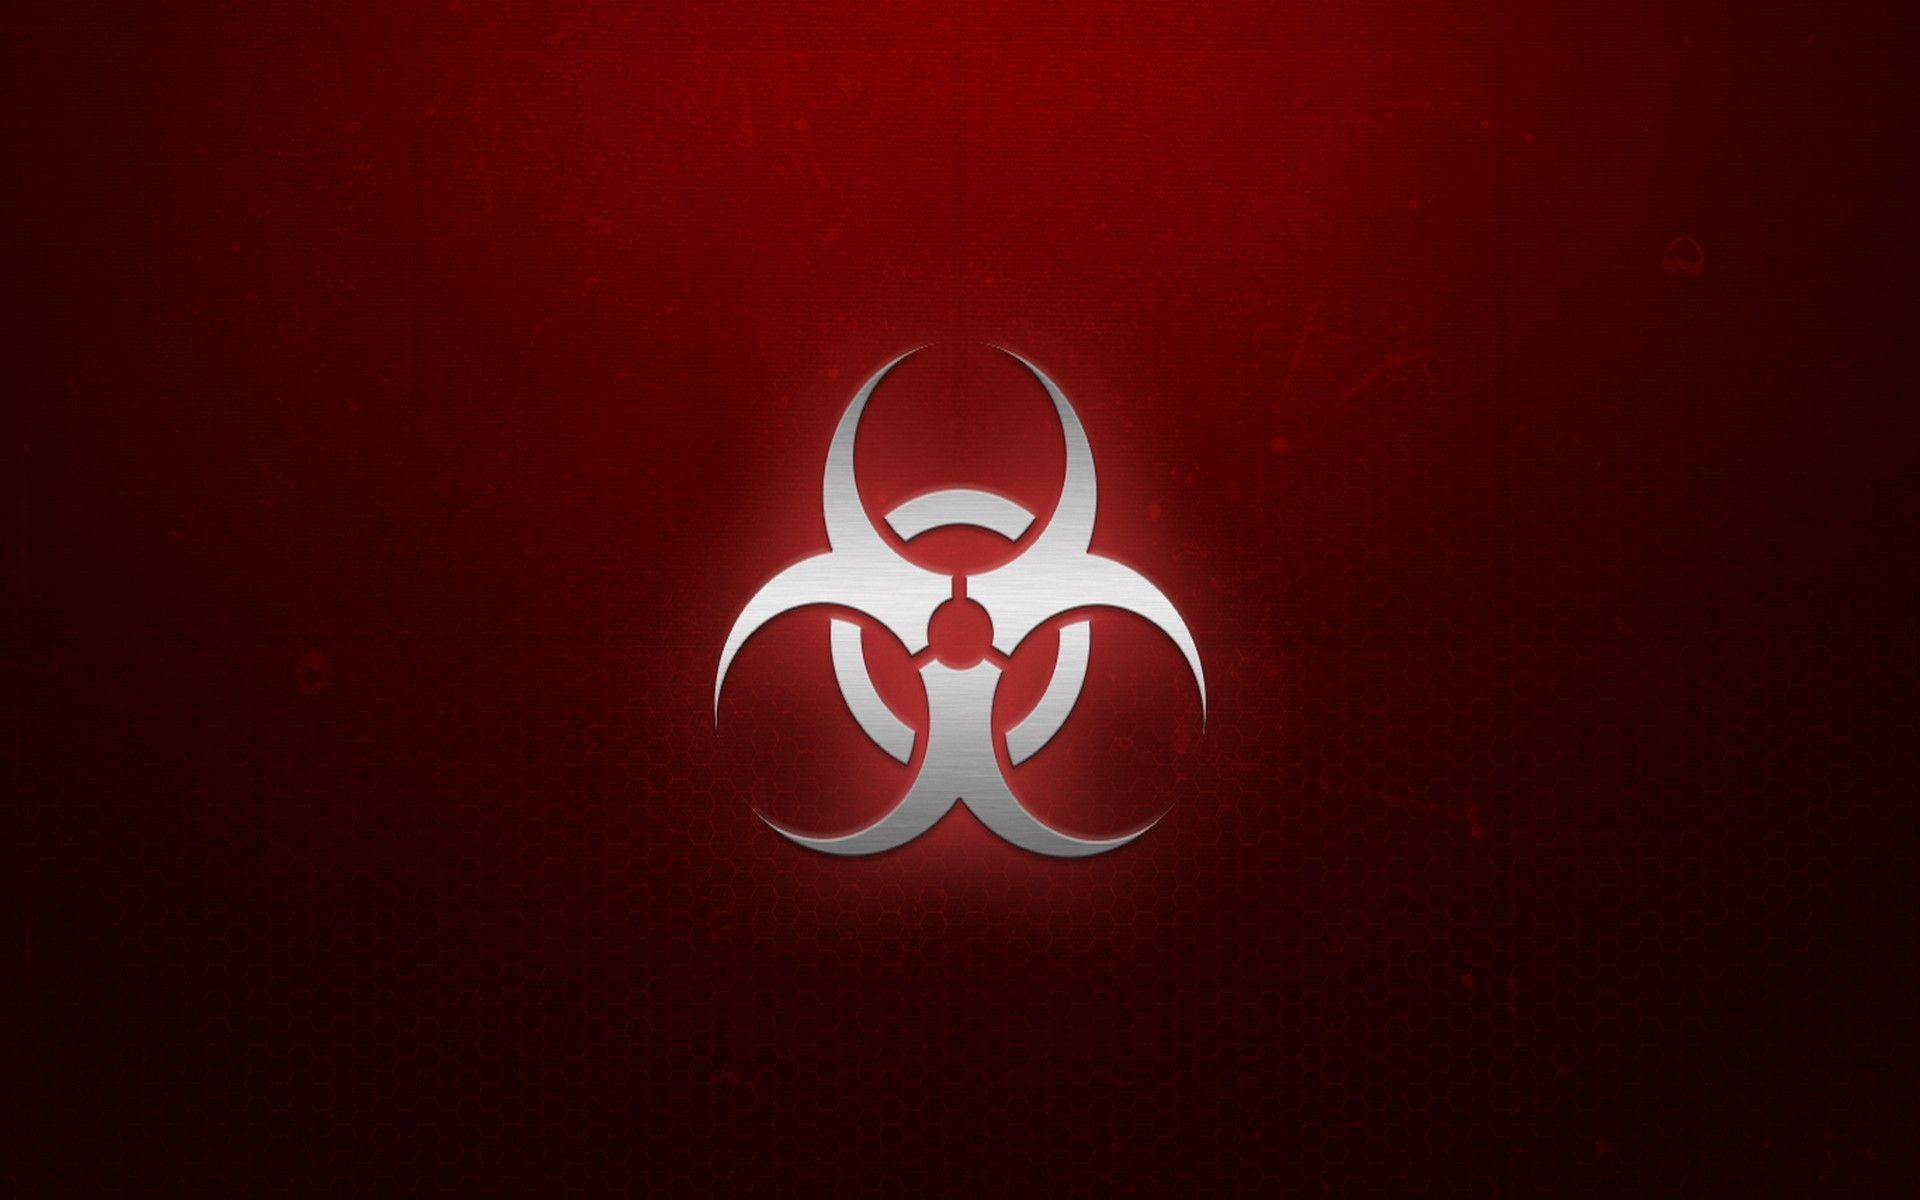 1920x1200 Biohazard Symbol Wallpaper for Desktop.